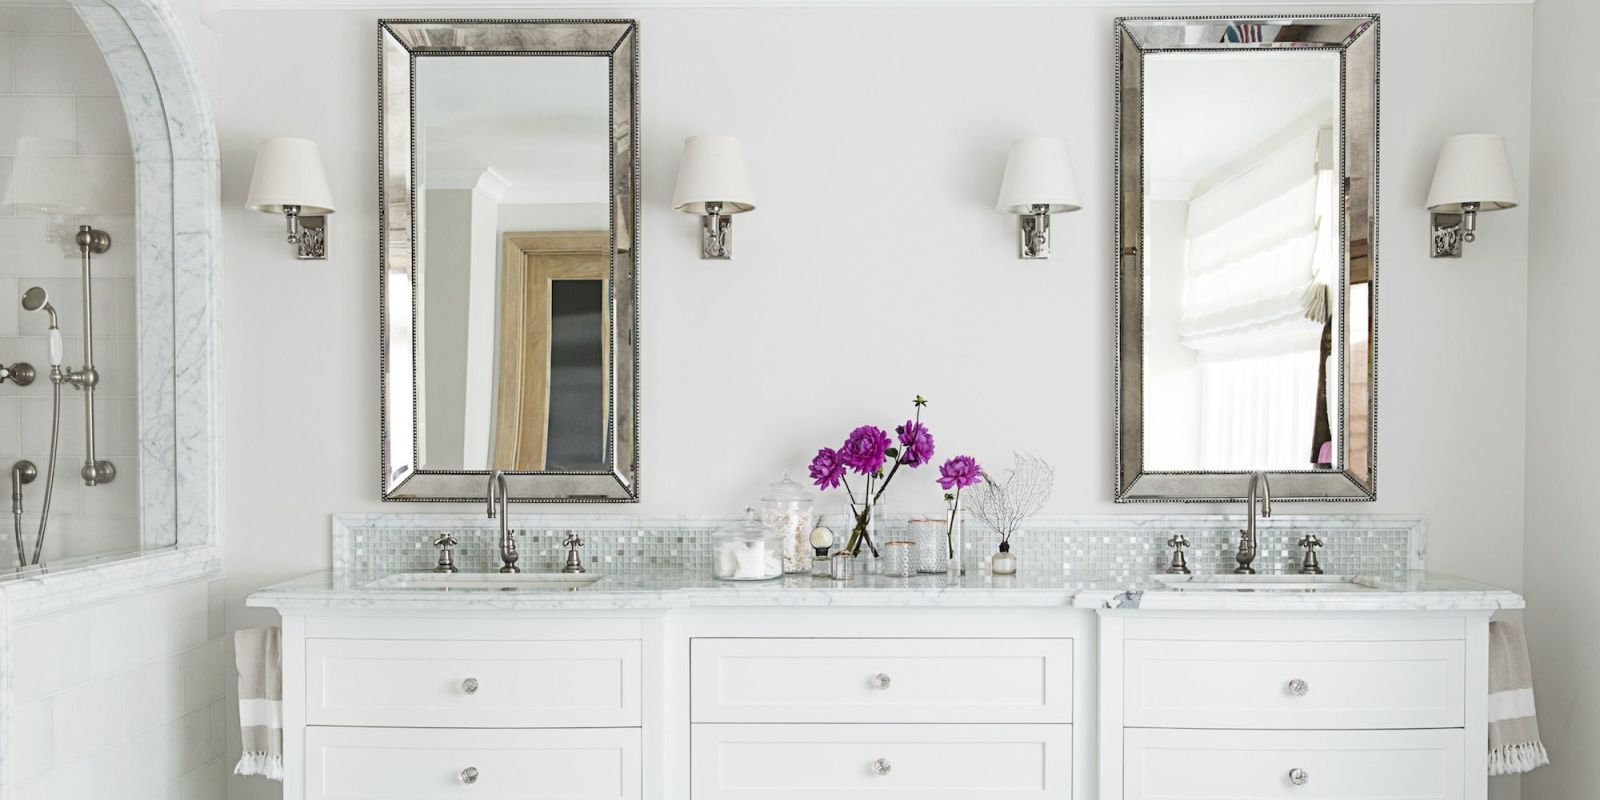 Merveilleux A Few Key Design Choices Can Update The Vibe Of Your Bathroom In A Snap.  Want A Clean, Modern Look? All Over White Does The Trick. Use Colorful  Accents Like ...